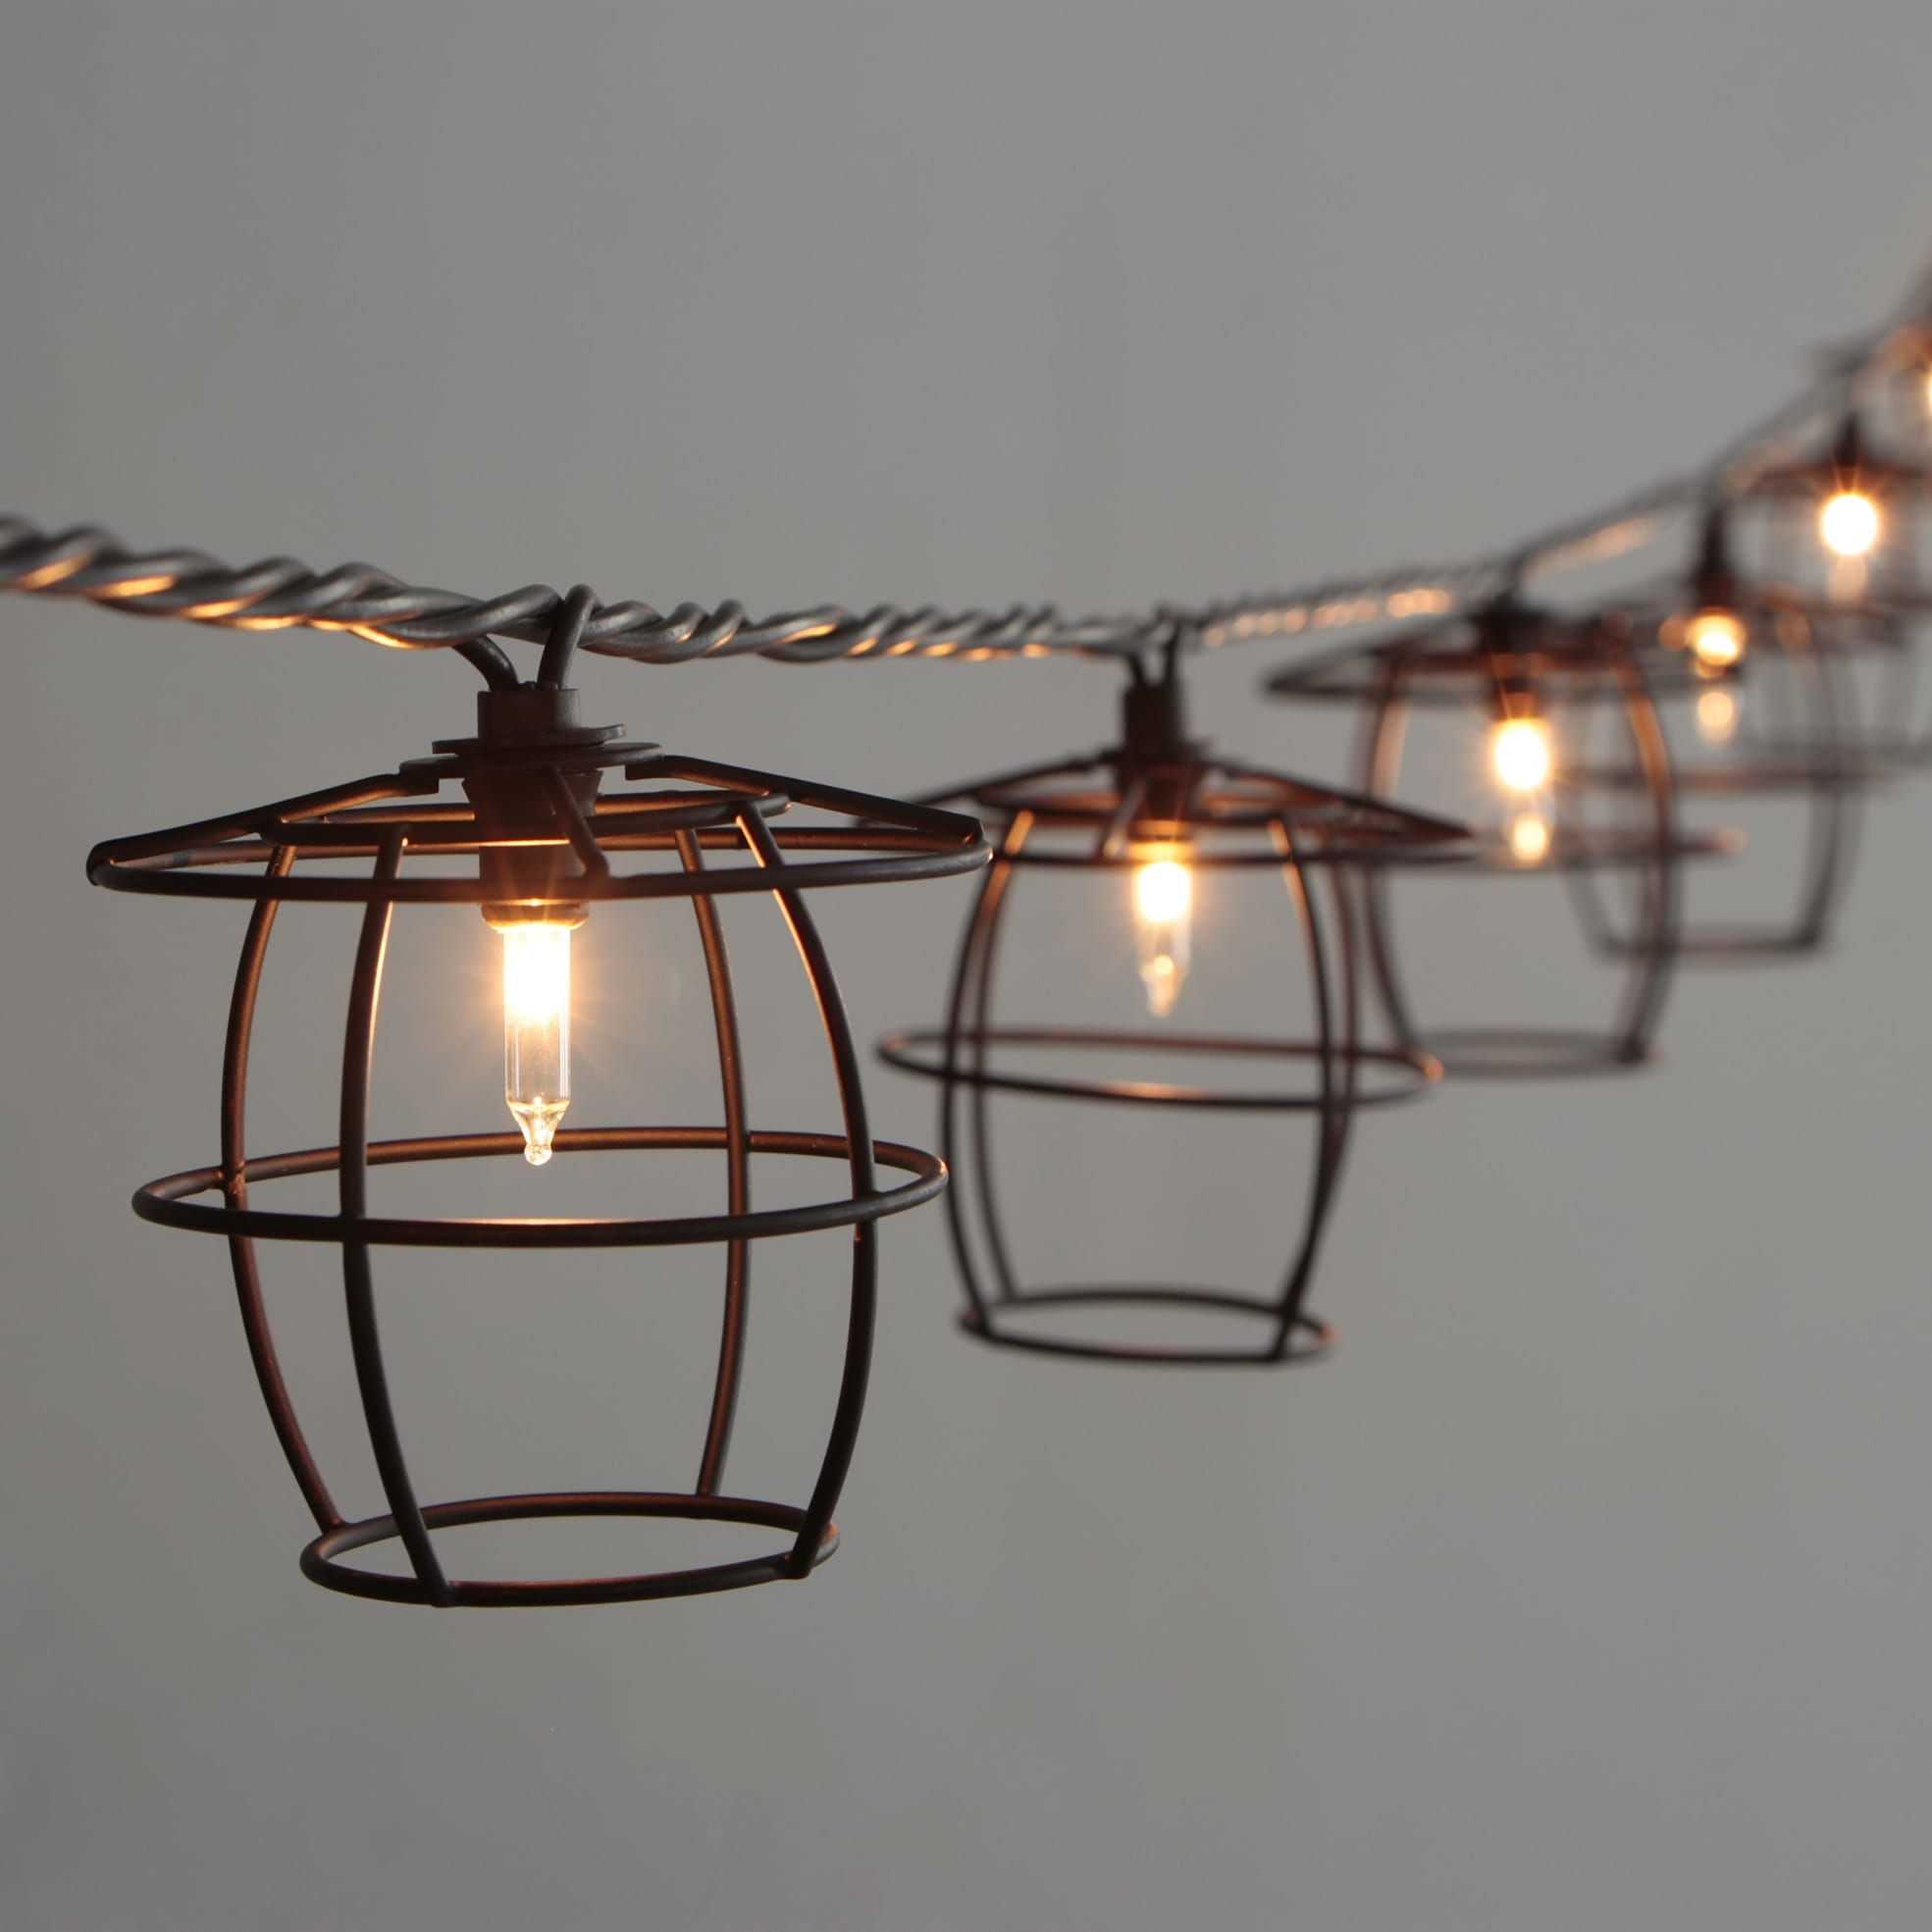 hot sale online d8aca 094e8 China Prepainted Steel Coil String Lights With Bamboo Cover ...